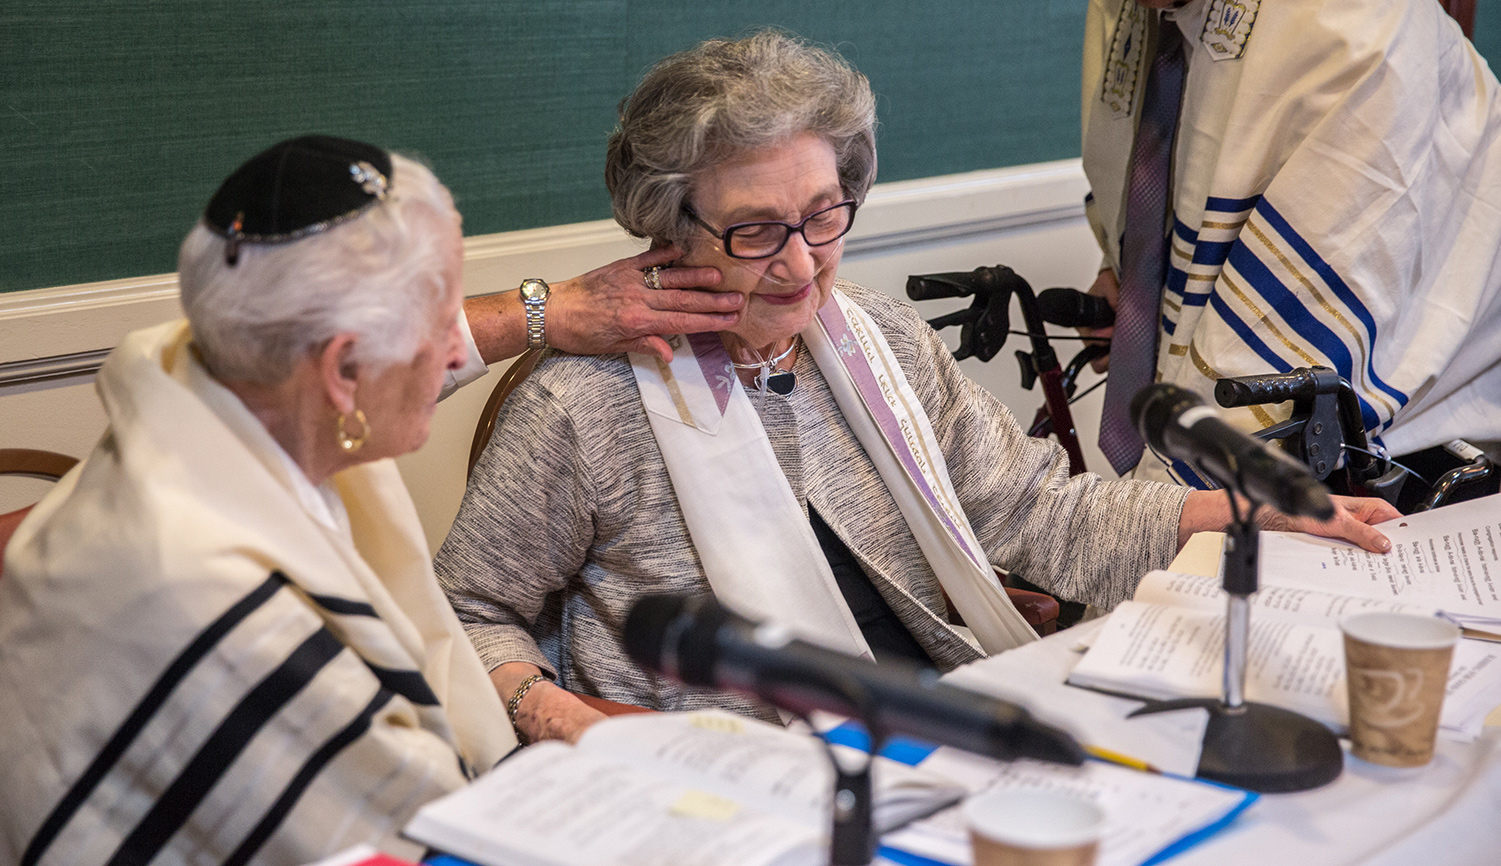 Charlotte Markowitz, 85, congratulates Sy Laufe, 90, after Sy read from the Torah at their bat mitzvah ceremony, at the Five Star Residences in Chevy Chase, Maryland, May 14, 2016. Evelyn Hockstein/For The Washington Post via Getty Images.